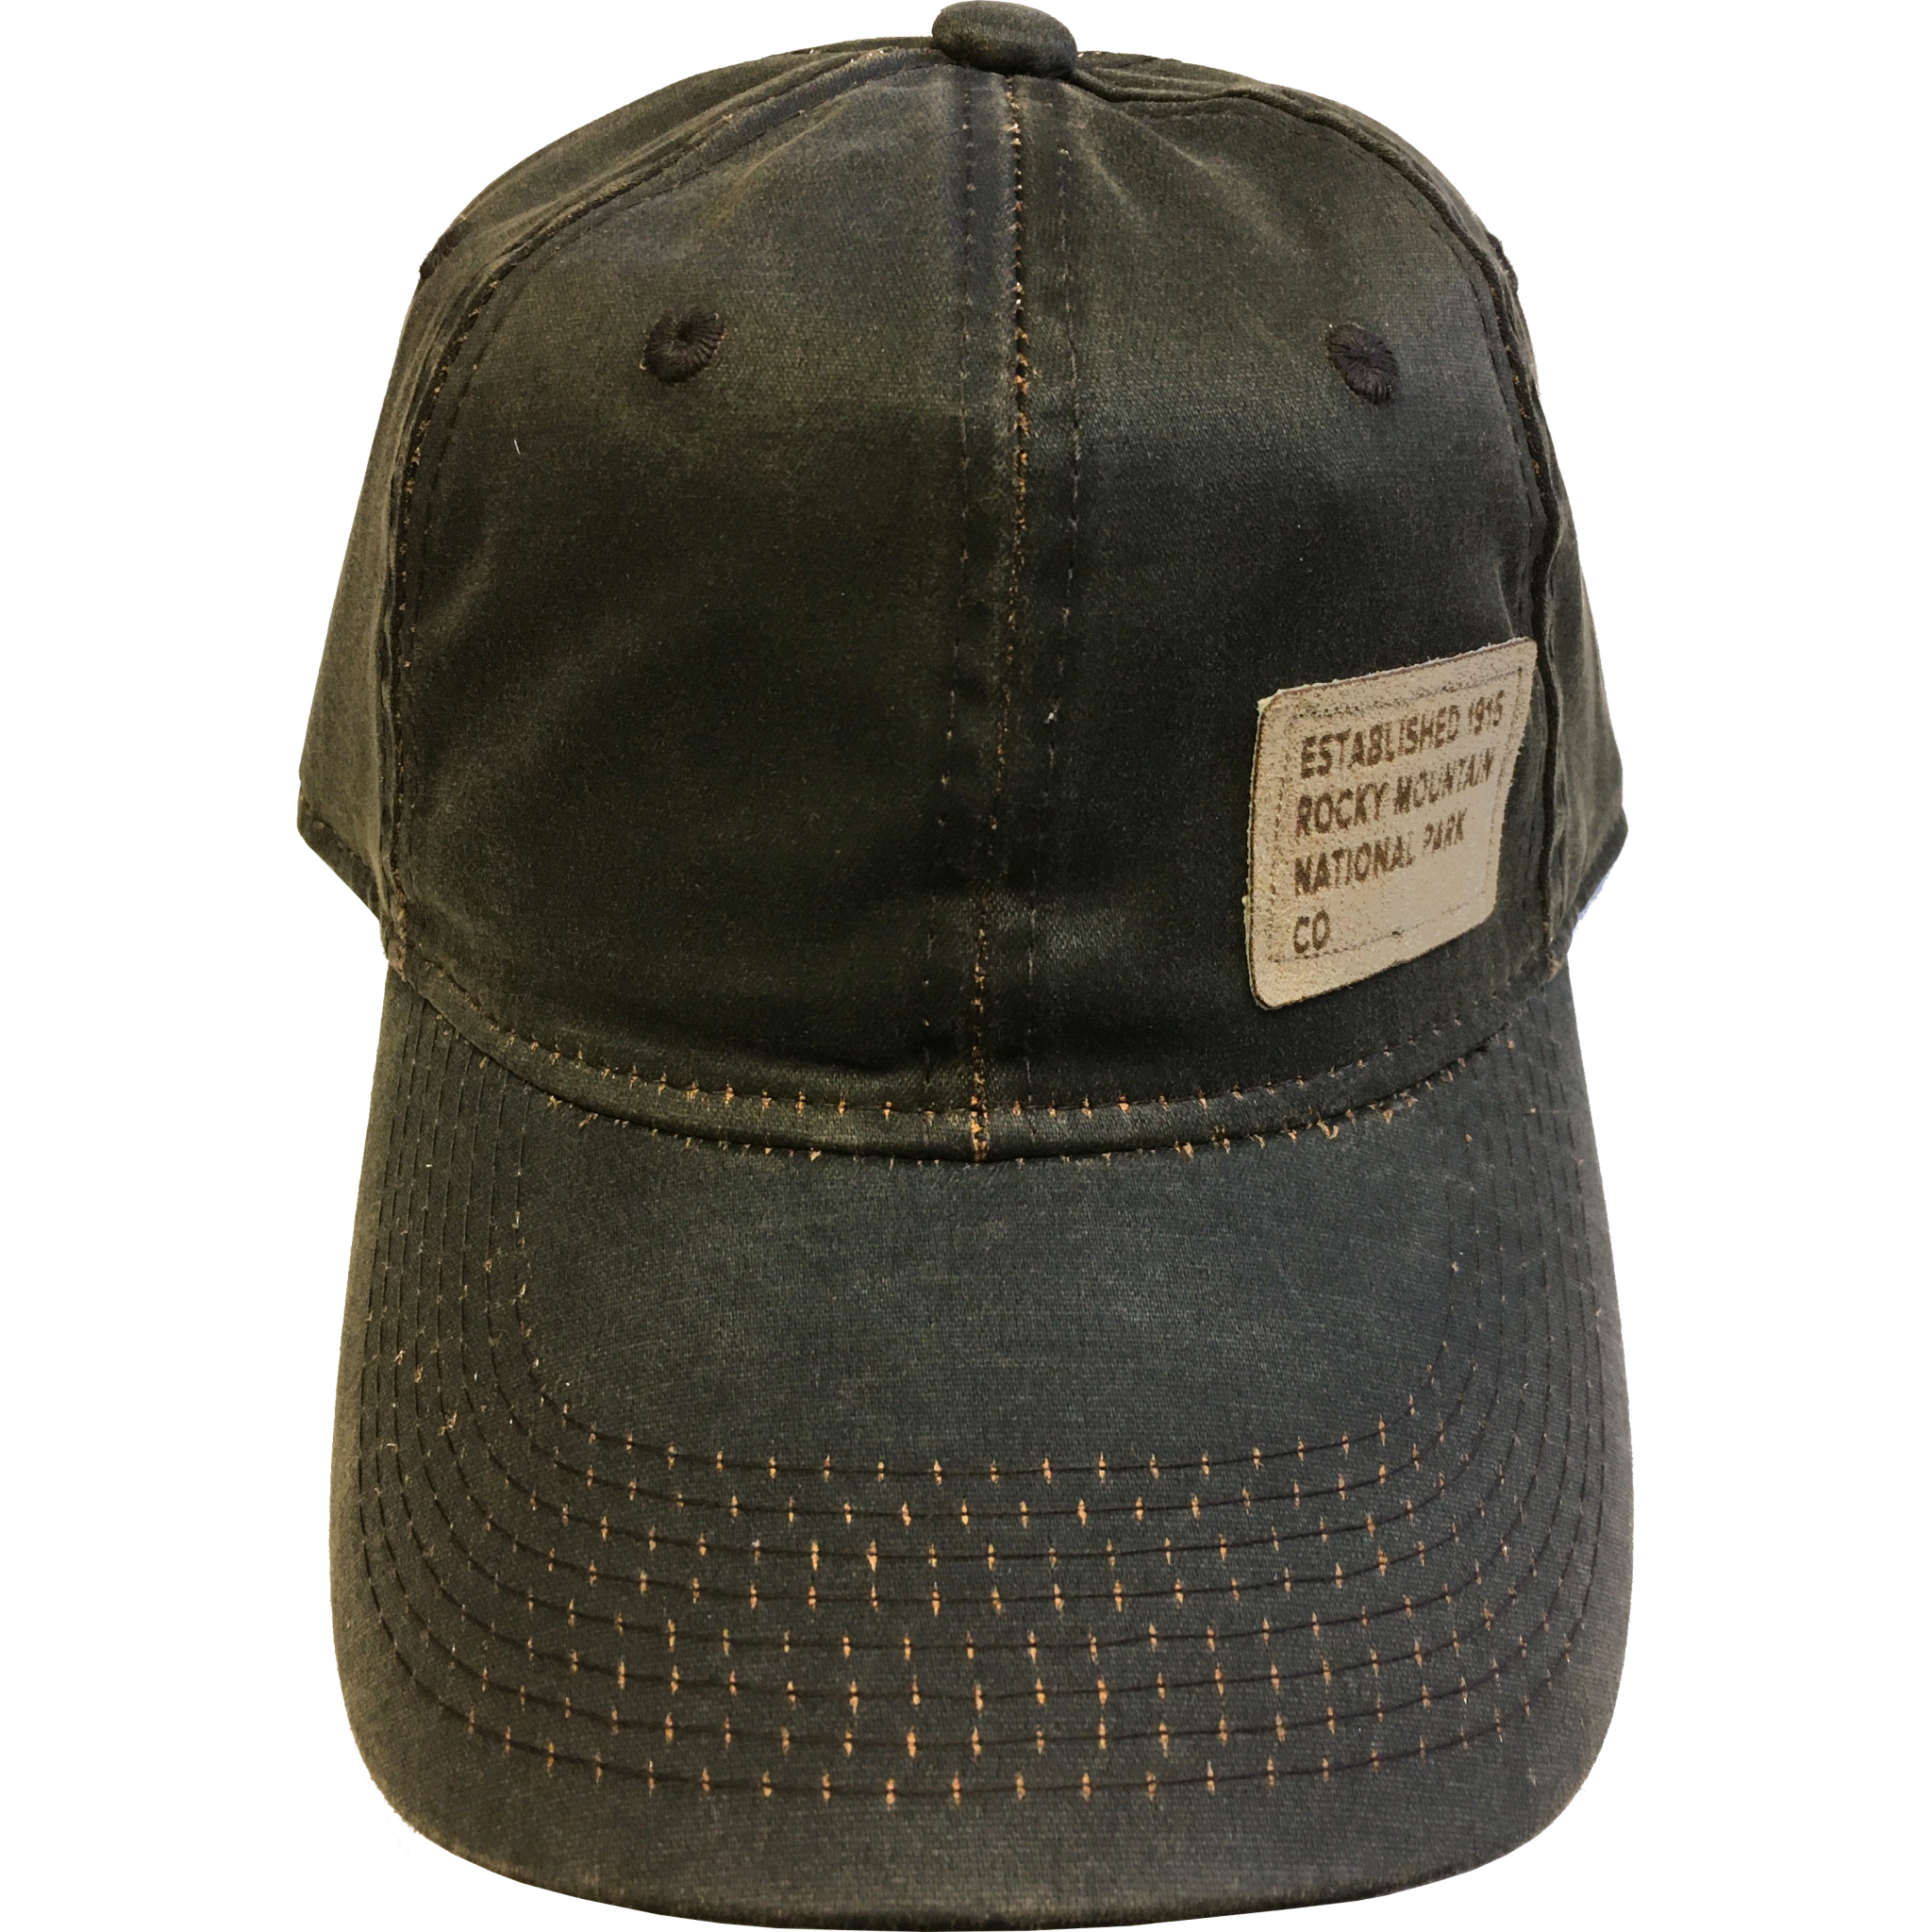 Brown square rectangle hat